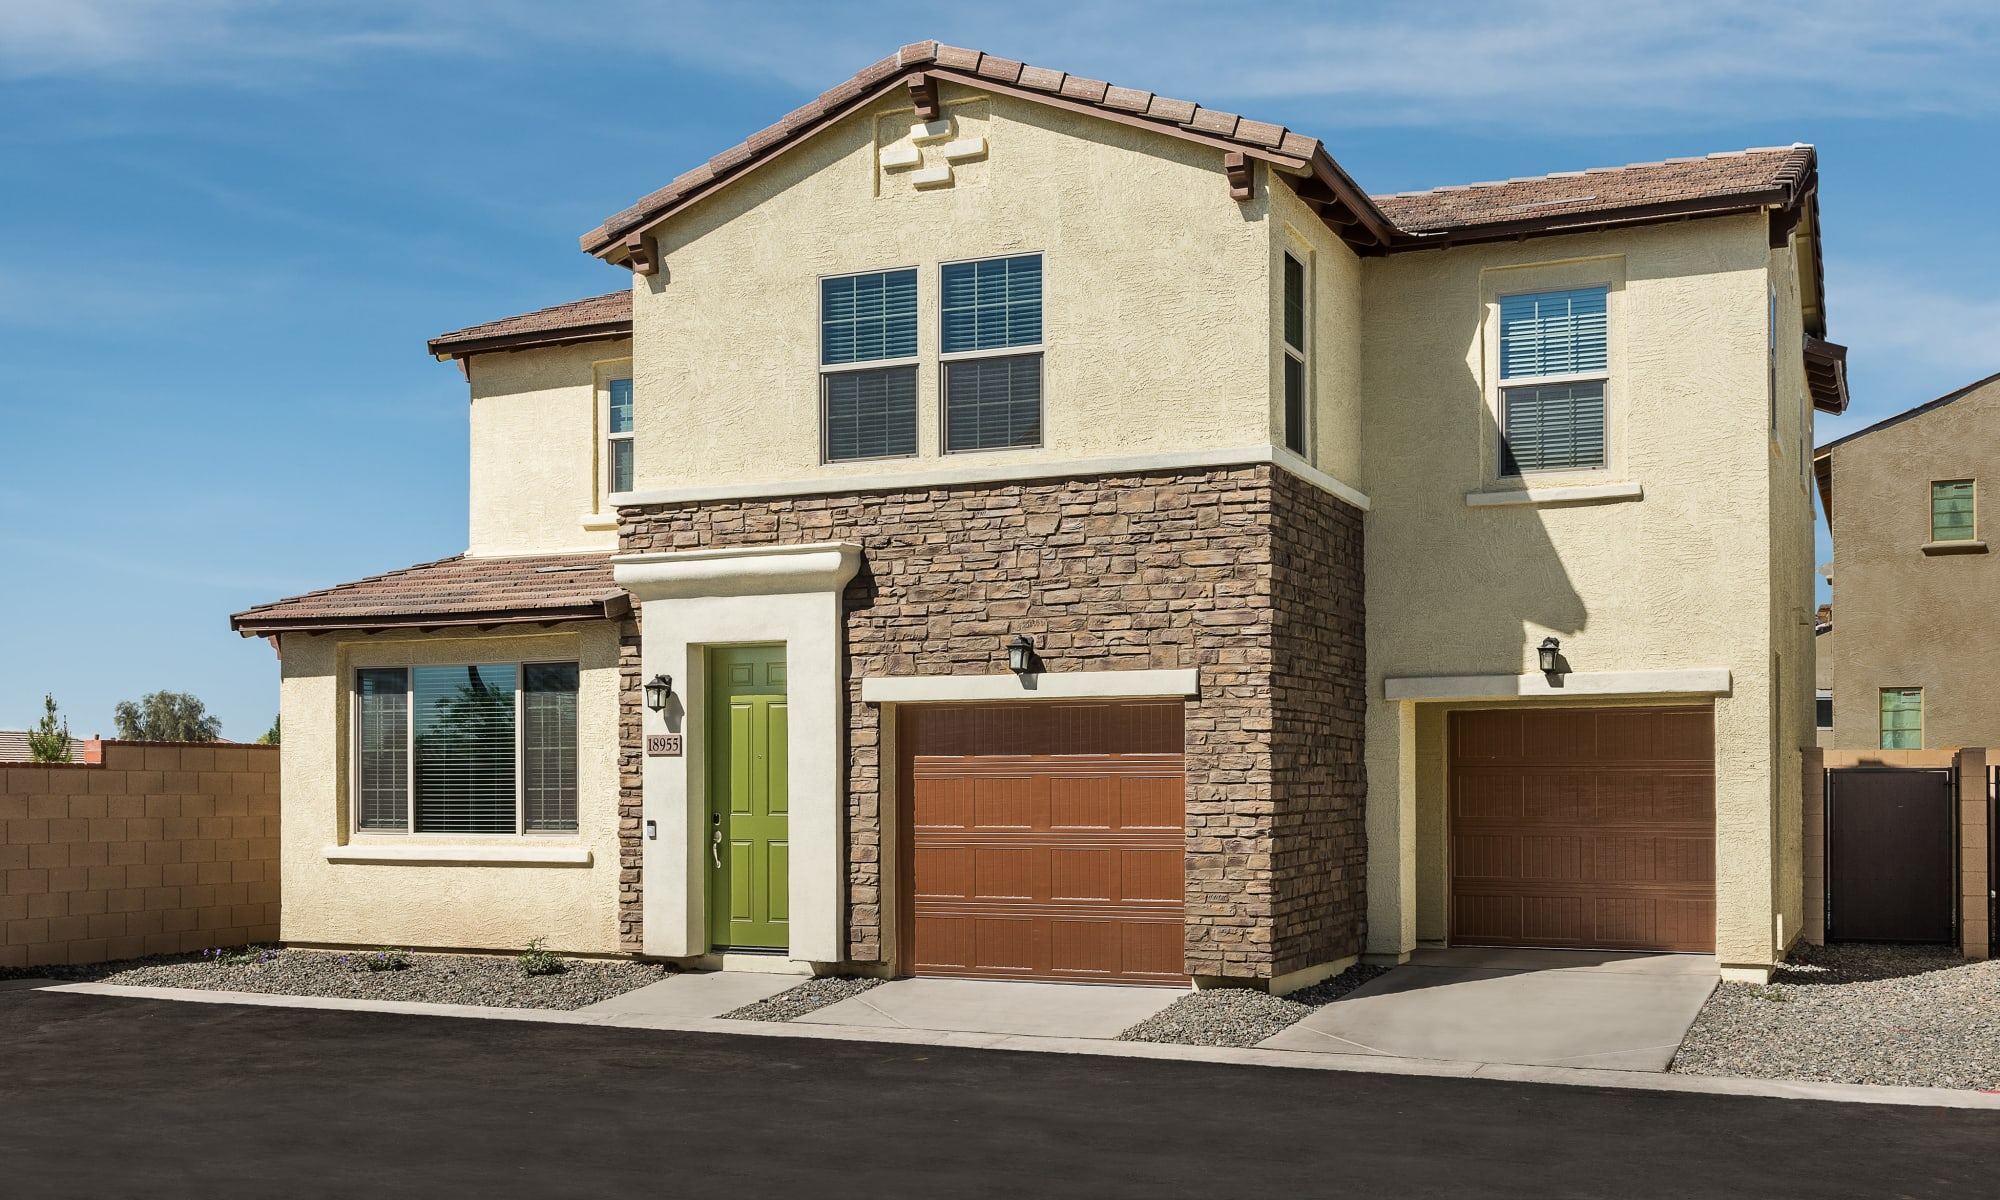 Home Exterior at Las Casas at Windrose in Litchfield Park, Arizona